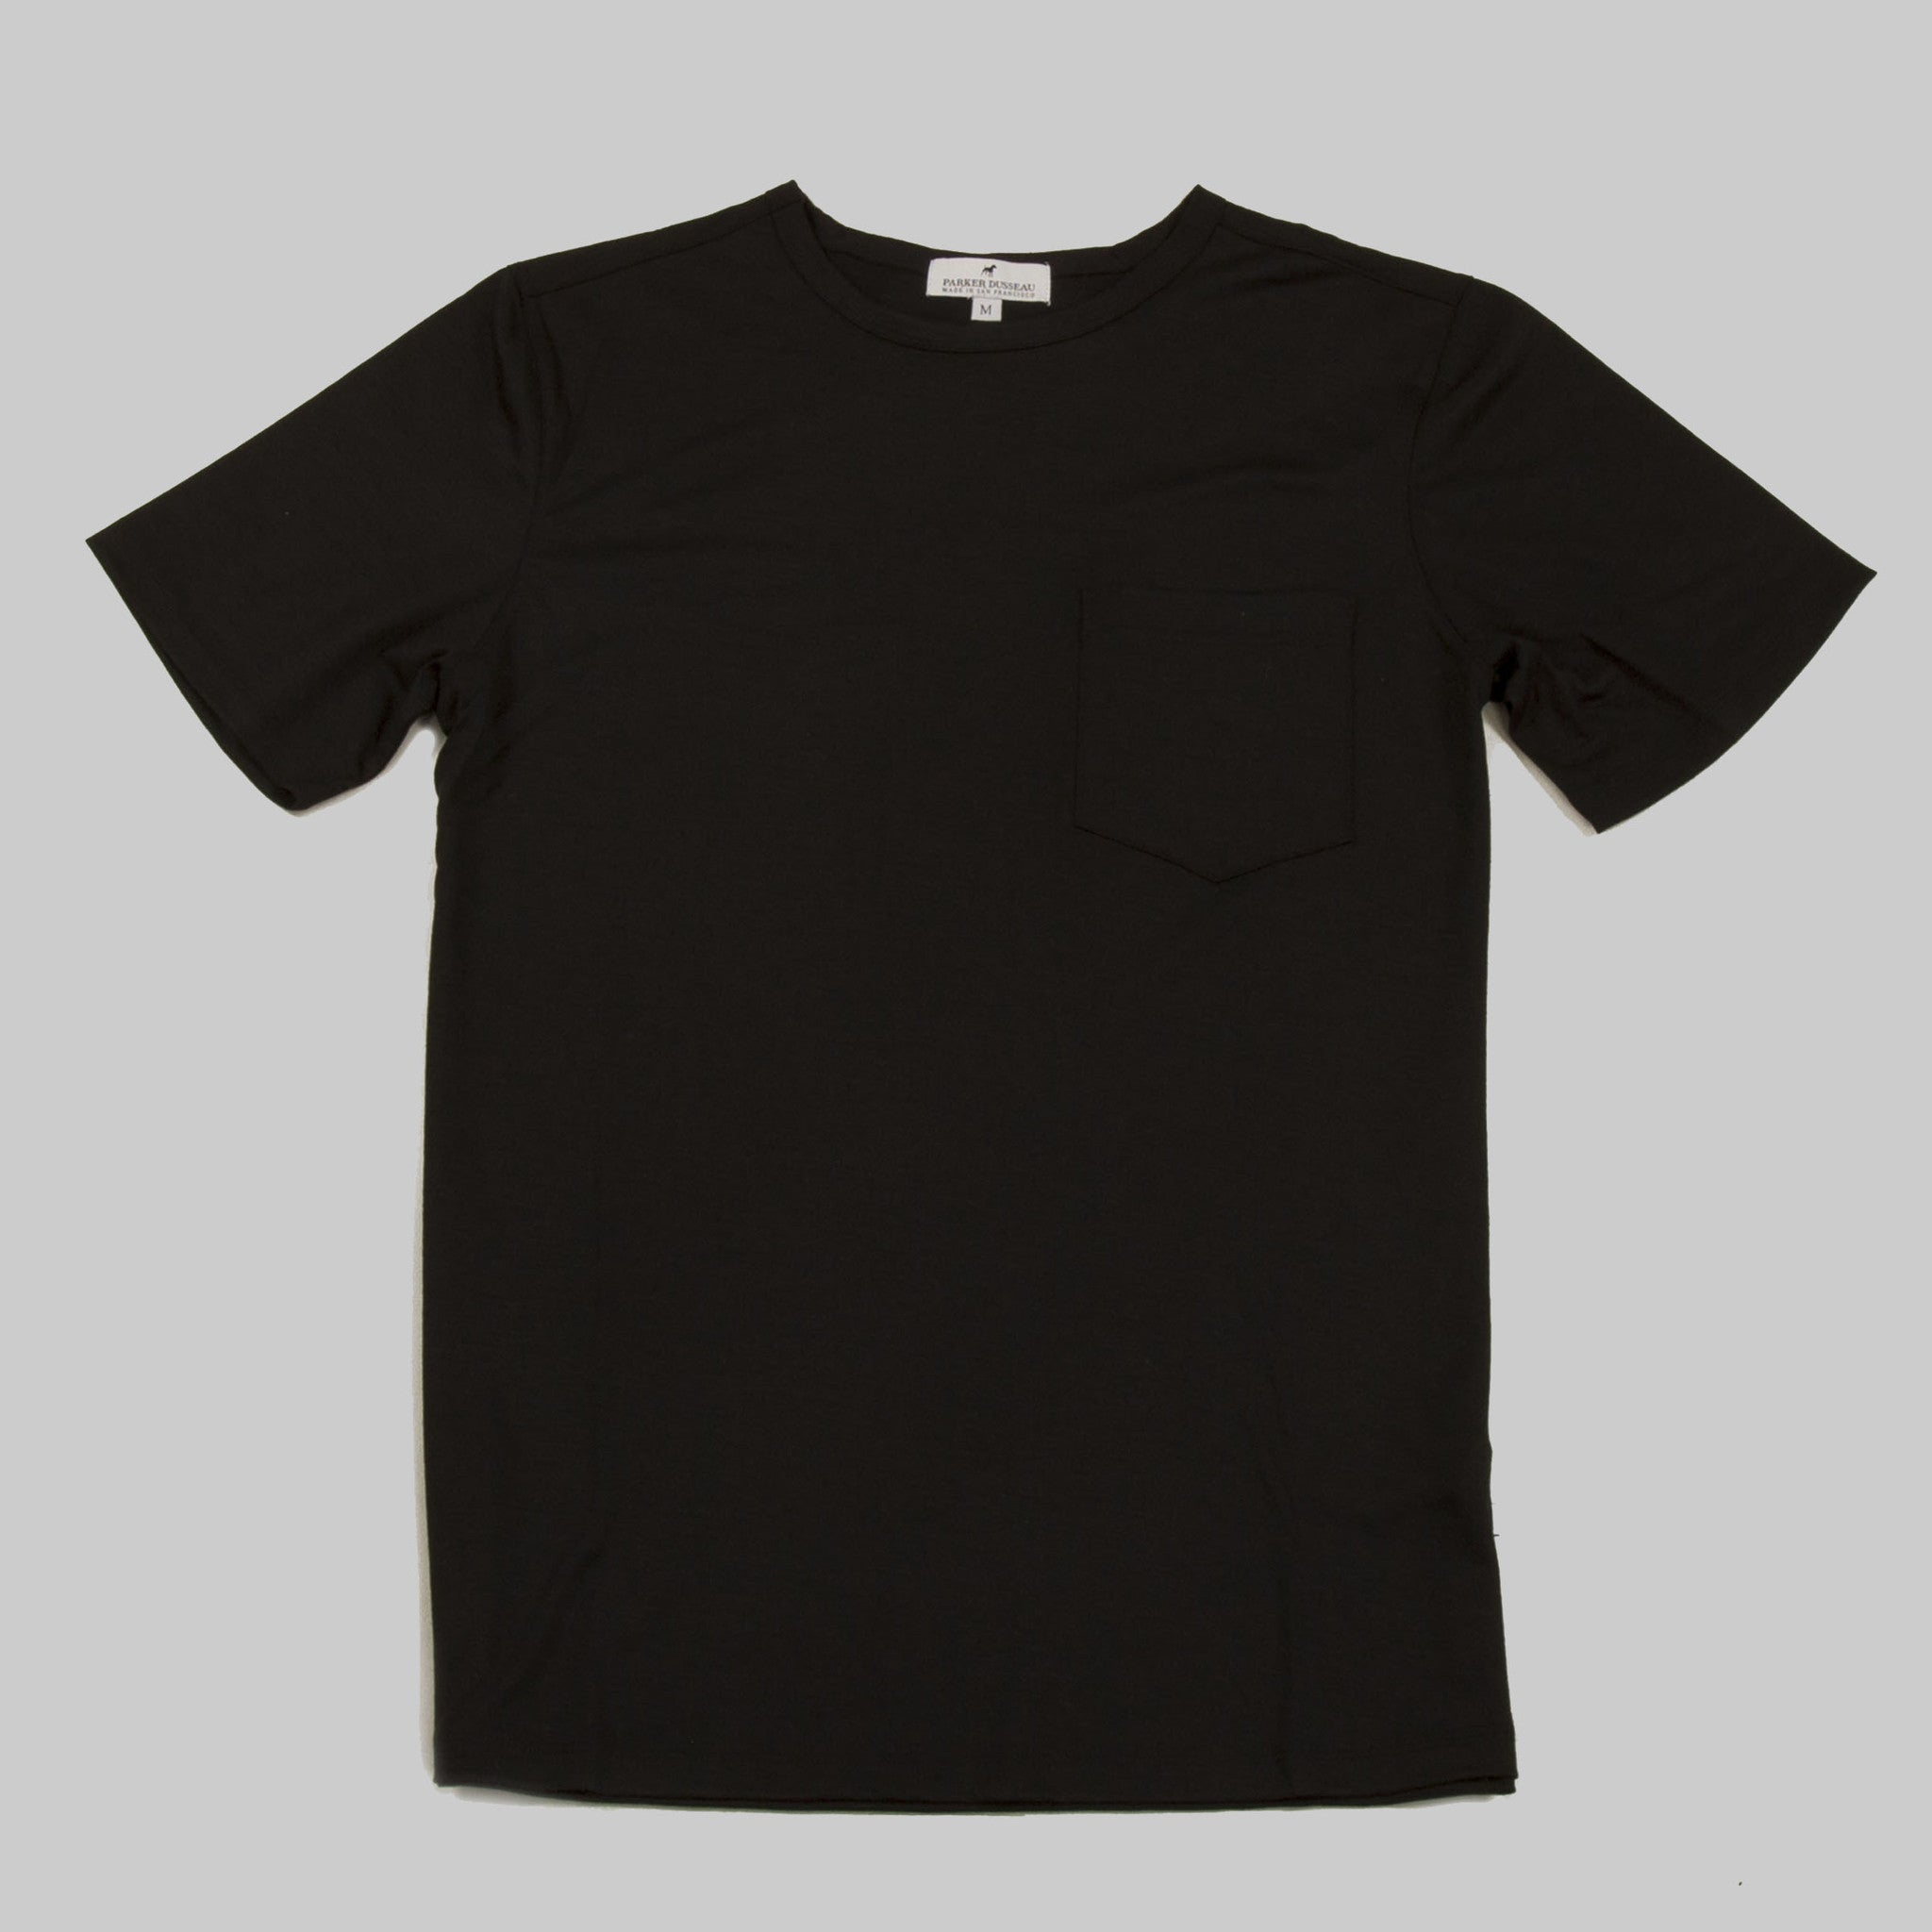 Merino Wool Single Pocket Tee - Black Short Sleeve Merino Tee- Parker Dusseau : Functional Menswear Essentials for the Always Ready Lifestyle. Based in San Francisco, California